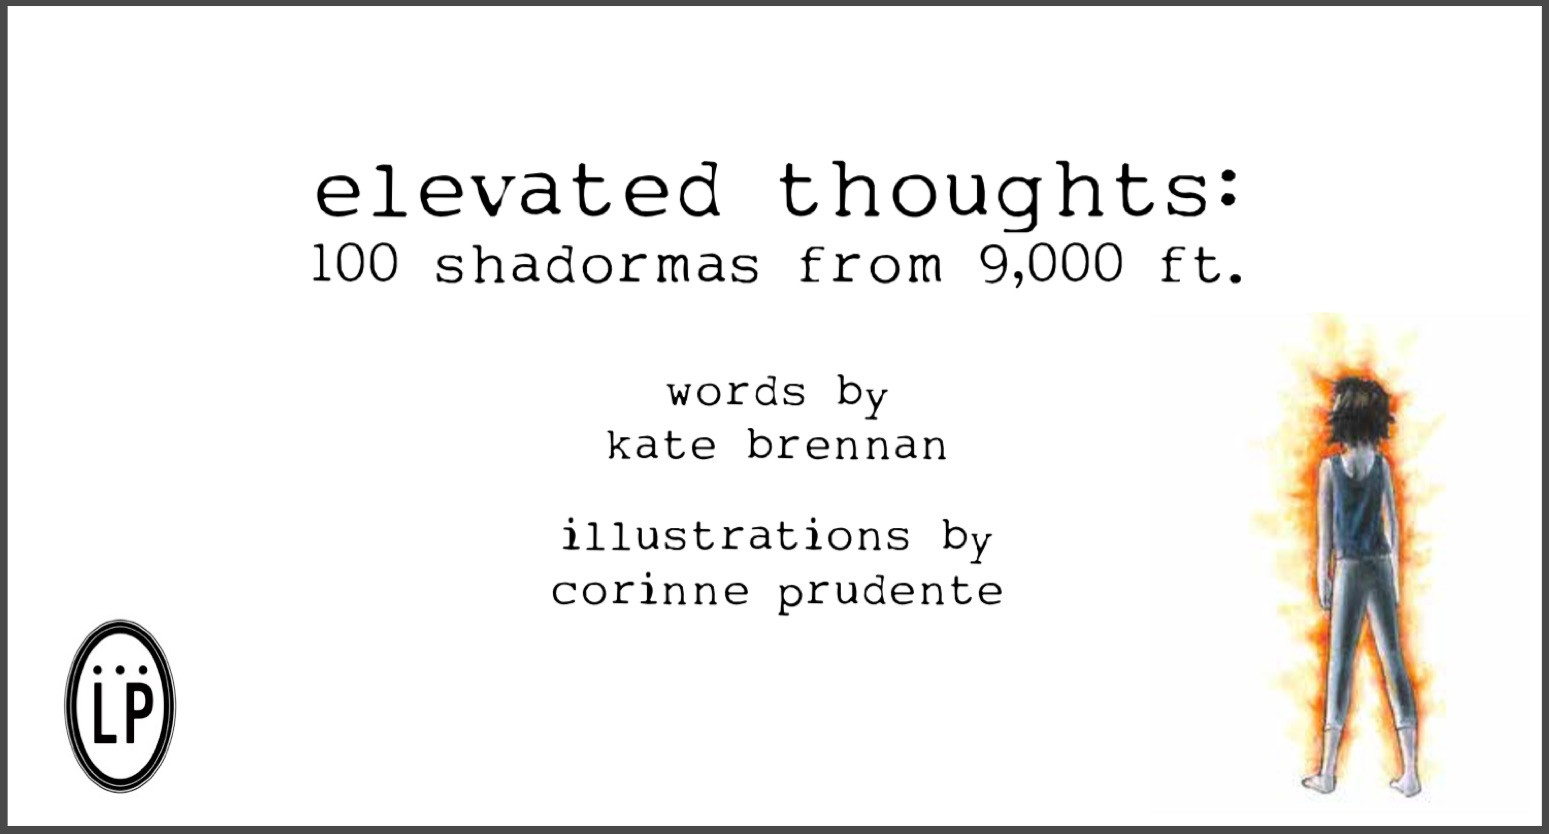 elevated thoughts: 100 shadormas from 9,000 ft.